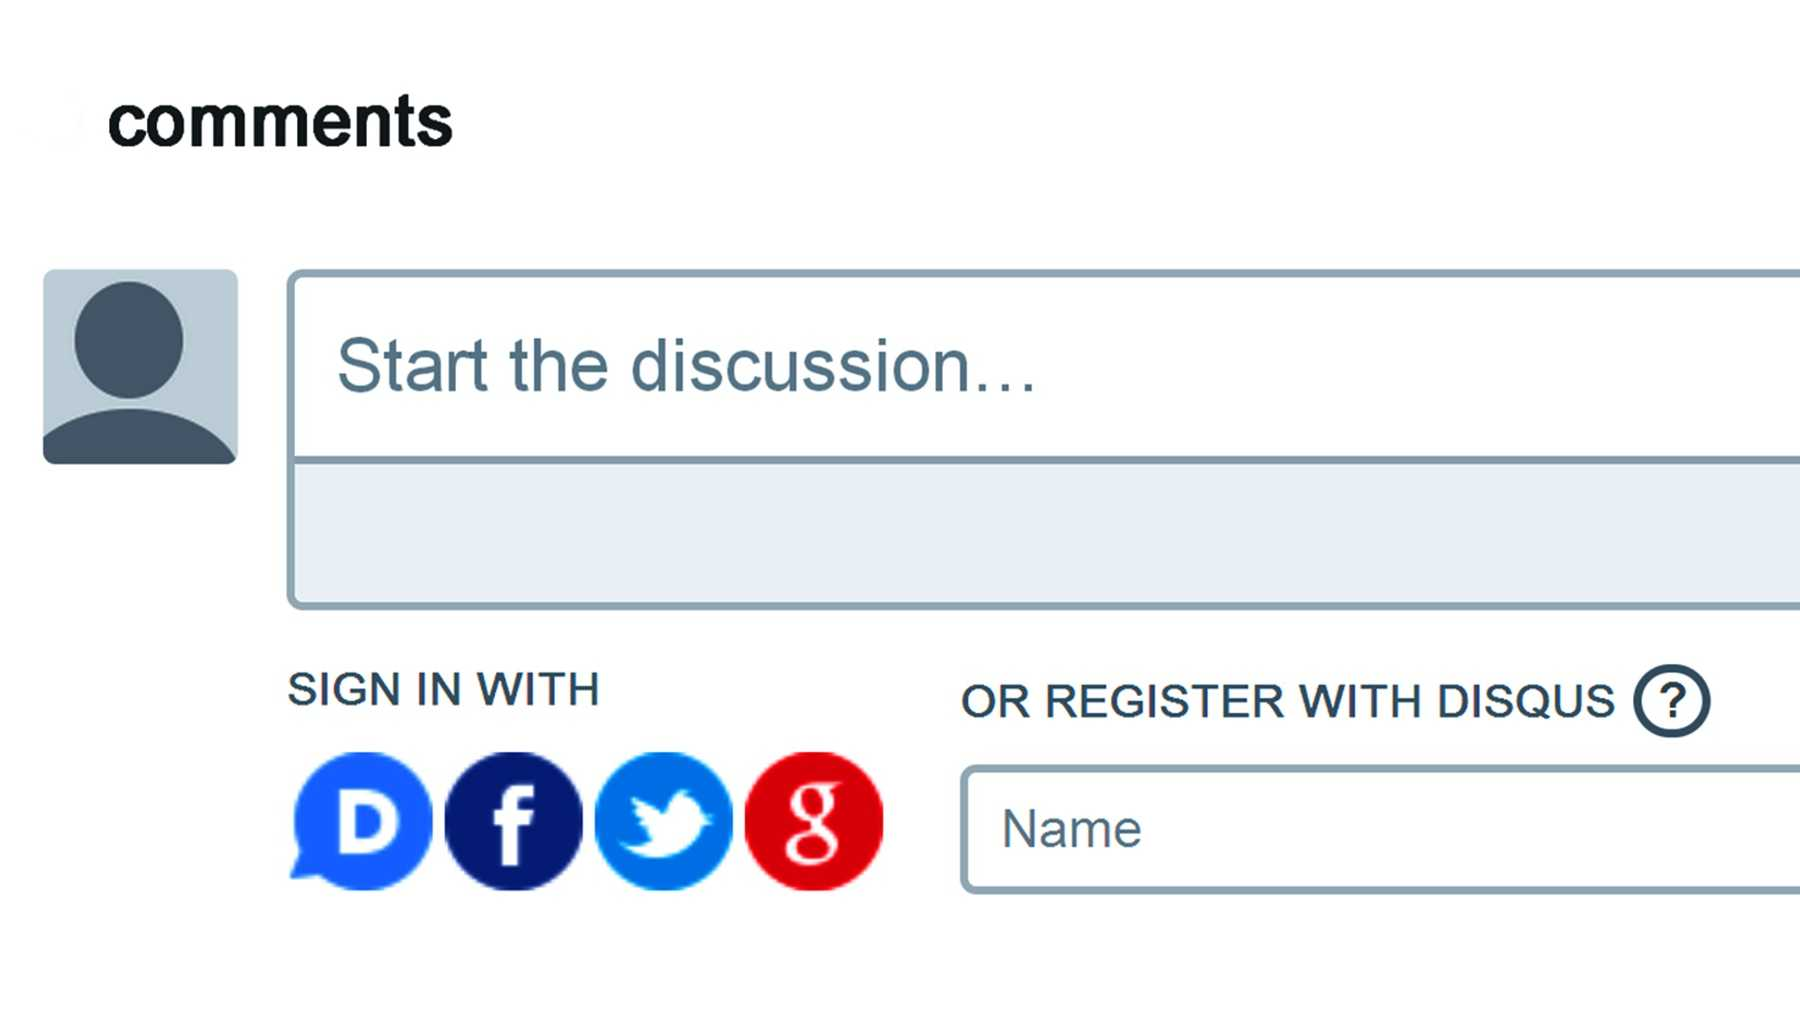 To make a comment on KSBW.com, readers must sign in first using a social networking profile.